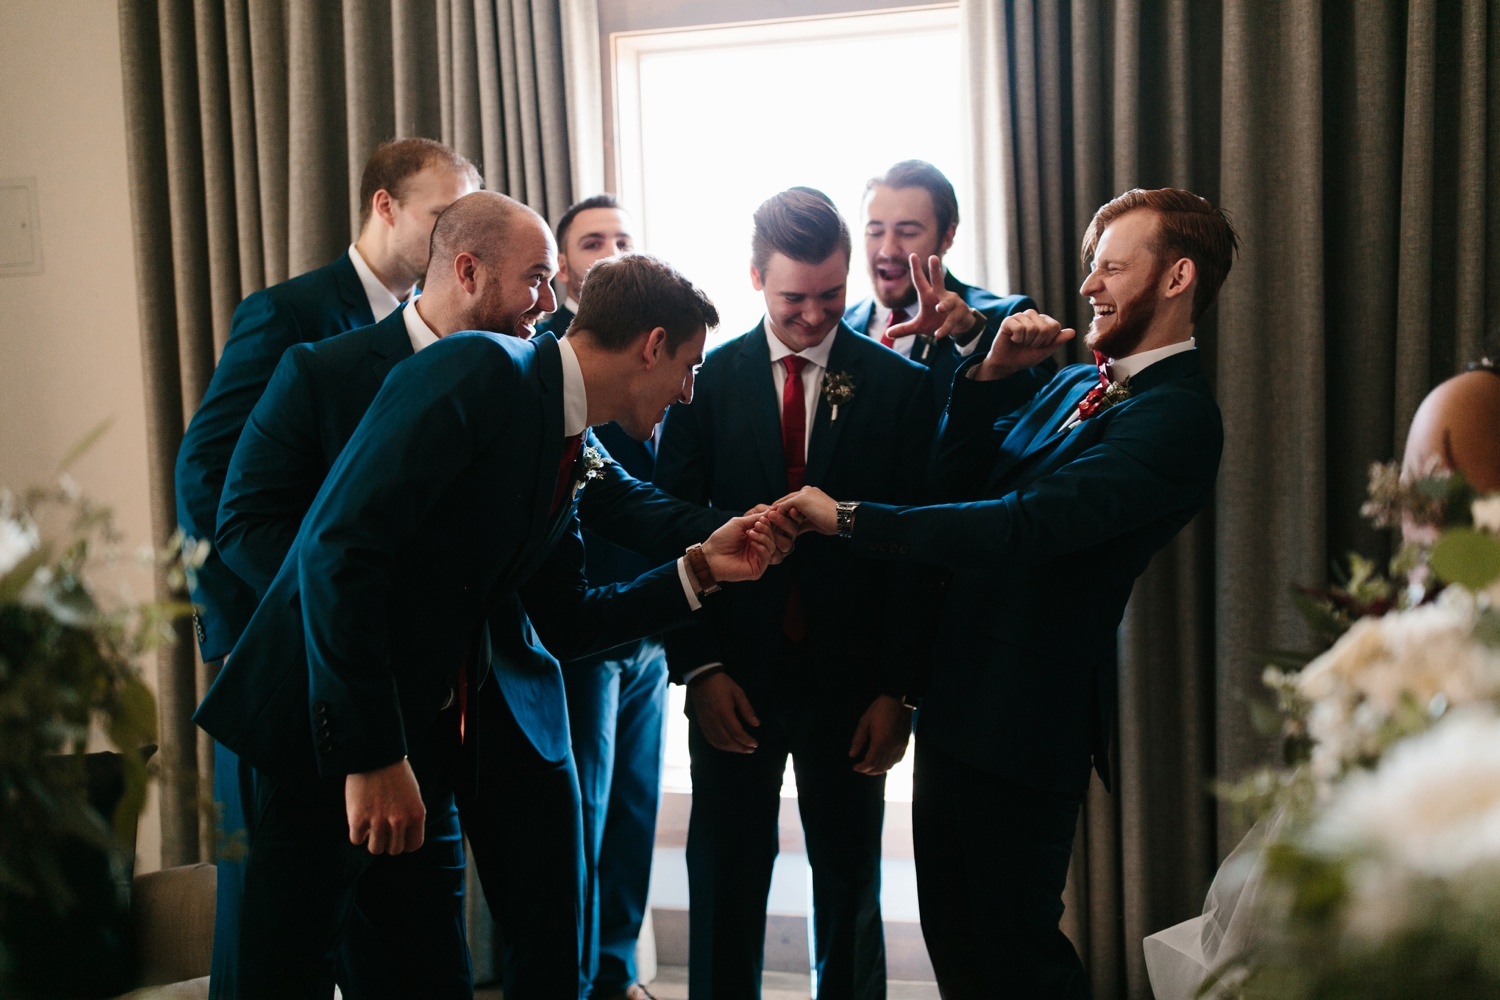 Grant + Lysette | a vibrant, deep burgundy and navy, and mixed metals wedding at Hidden Pines Chapel by North Texas Wedding Photographer Rachel Meagan Photography 116